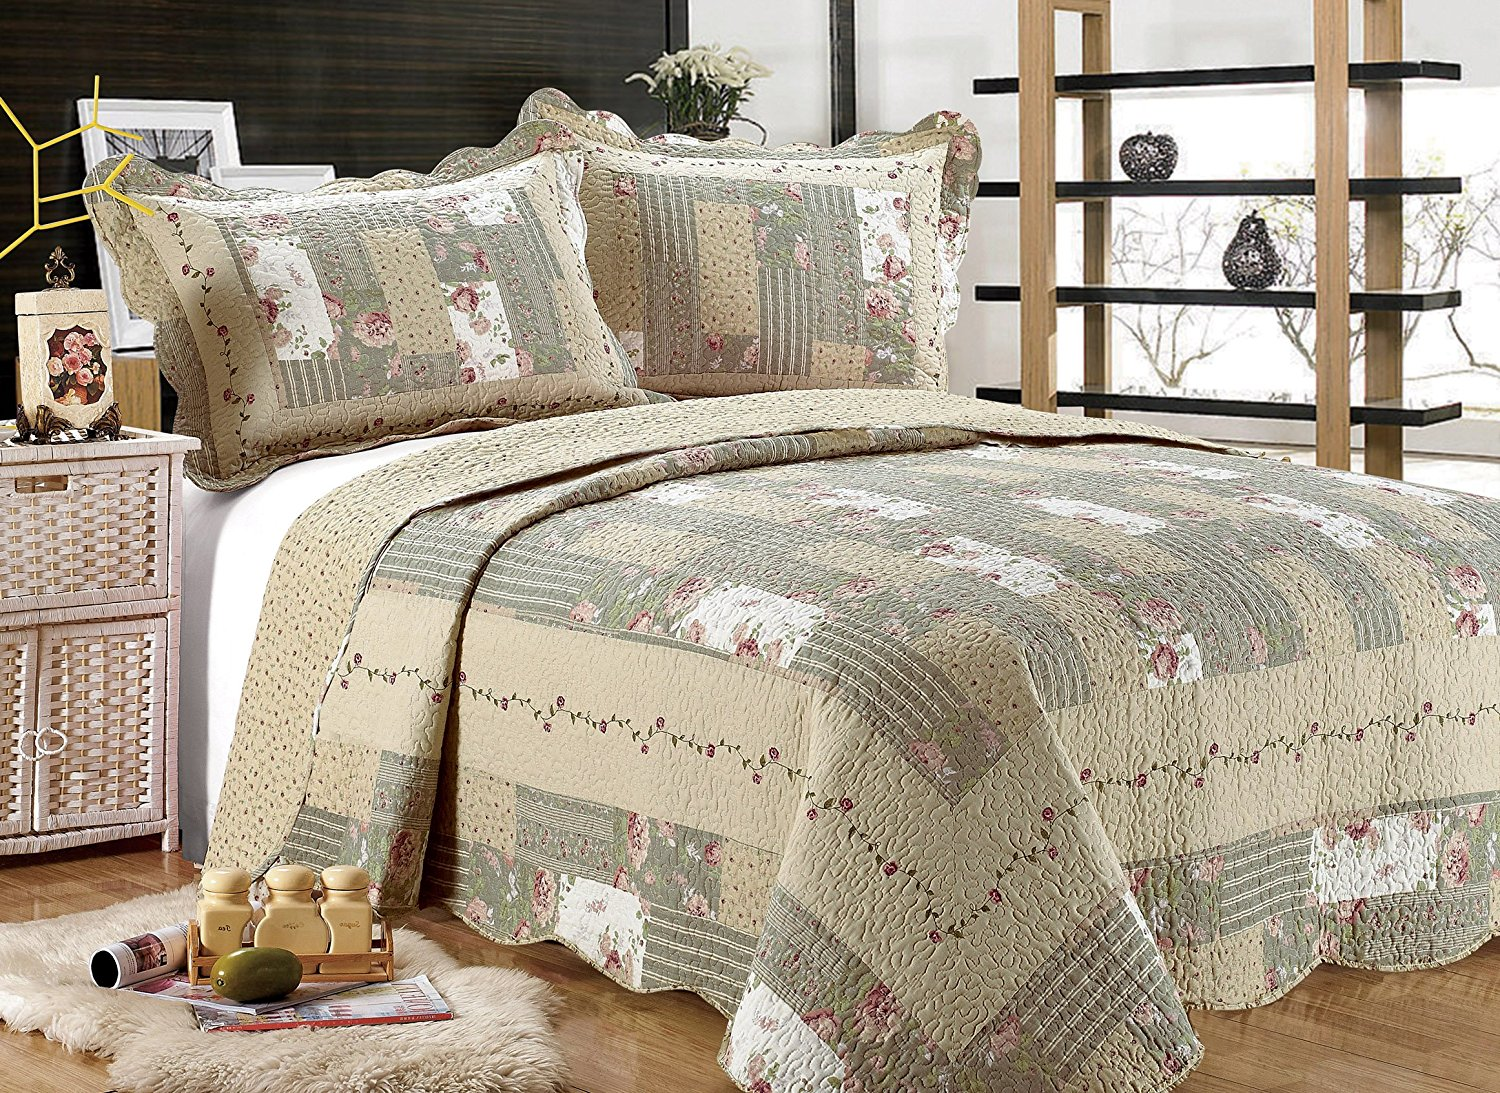 "All for You 3-piece Reversible Bedspread/ Coverlet / Quilt Set-beige, pink, burgundy and sage green prints, 100""x110"", (larger king with king size pillow shams)"